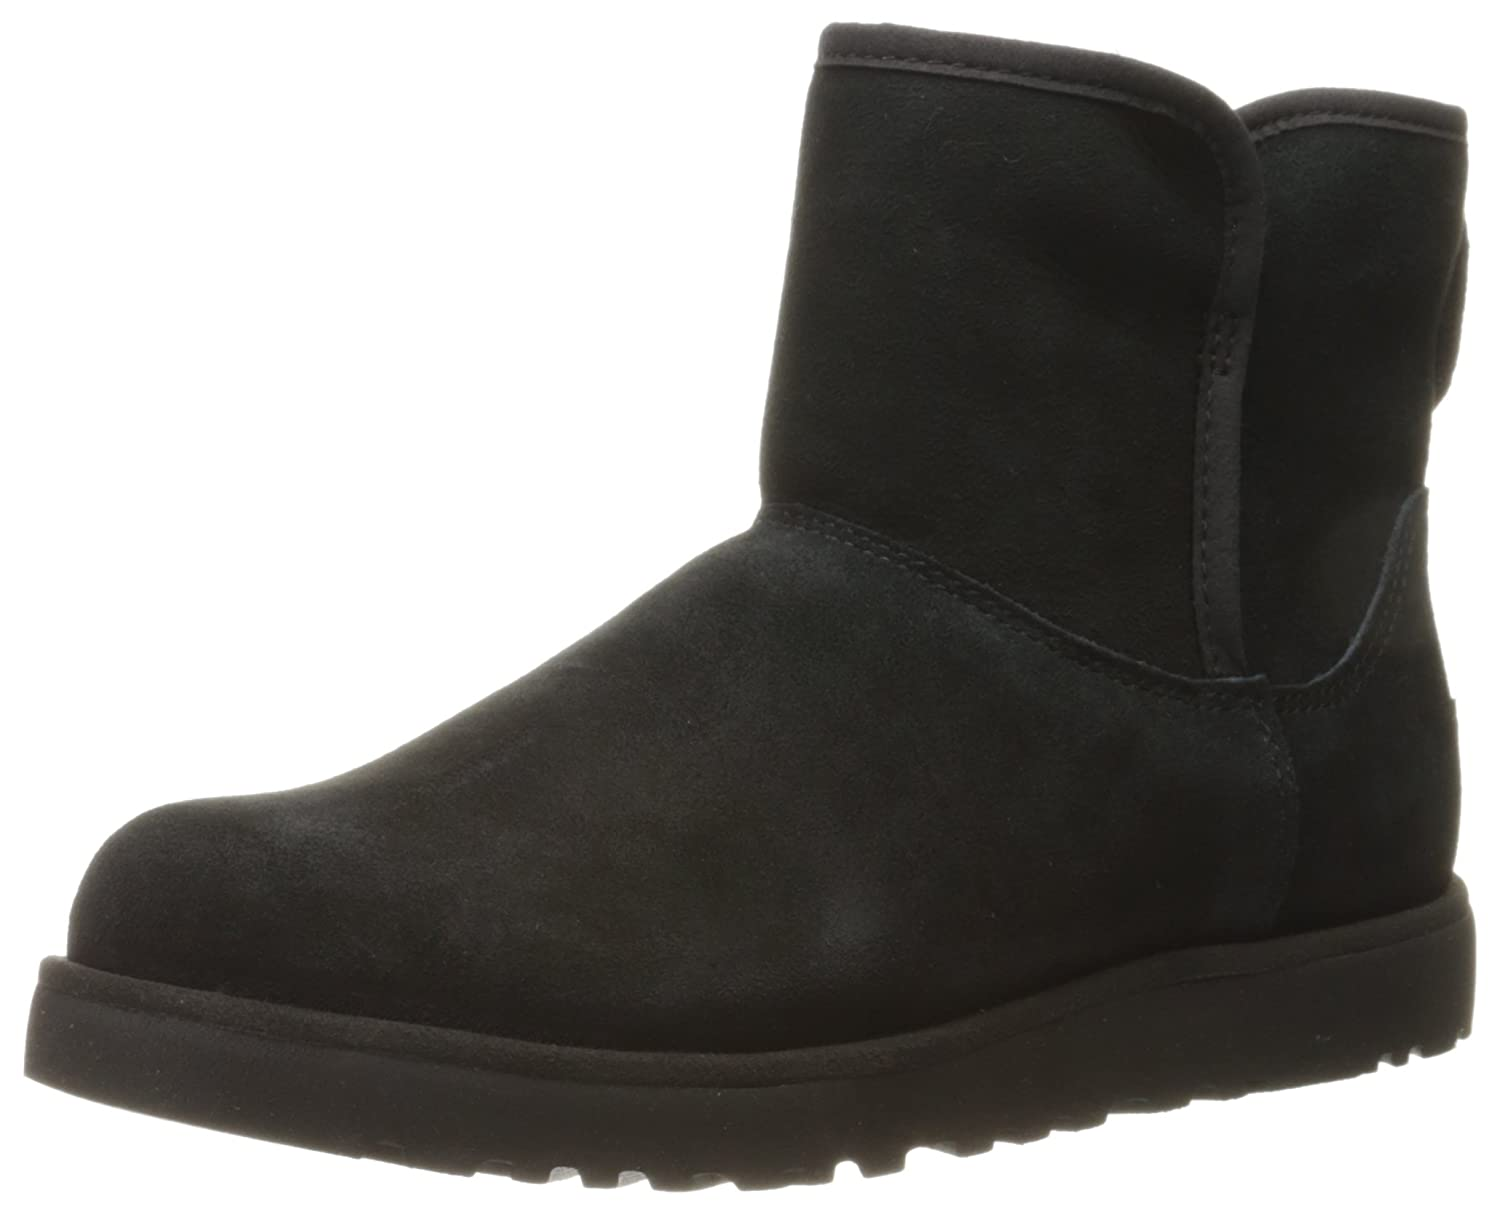 d5e1fd57dd4 UGG Women's Cory Winter Boot